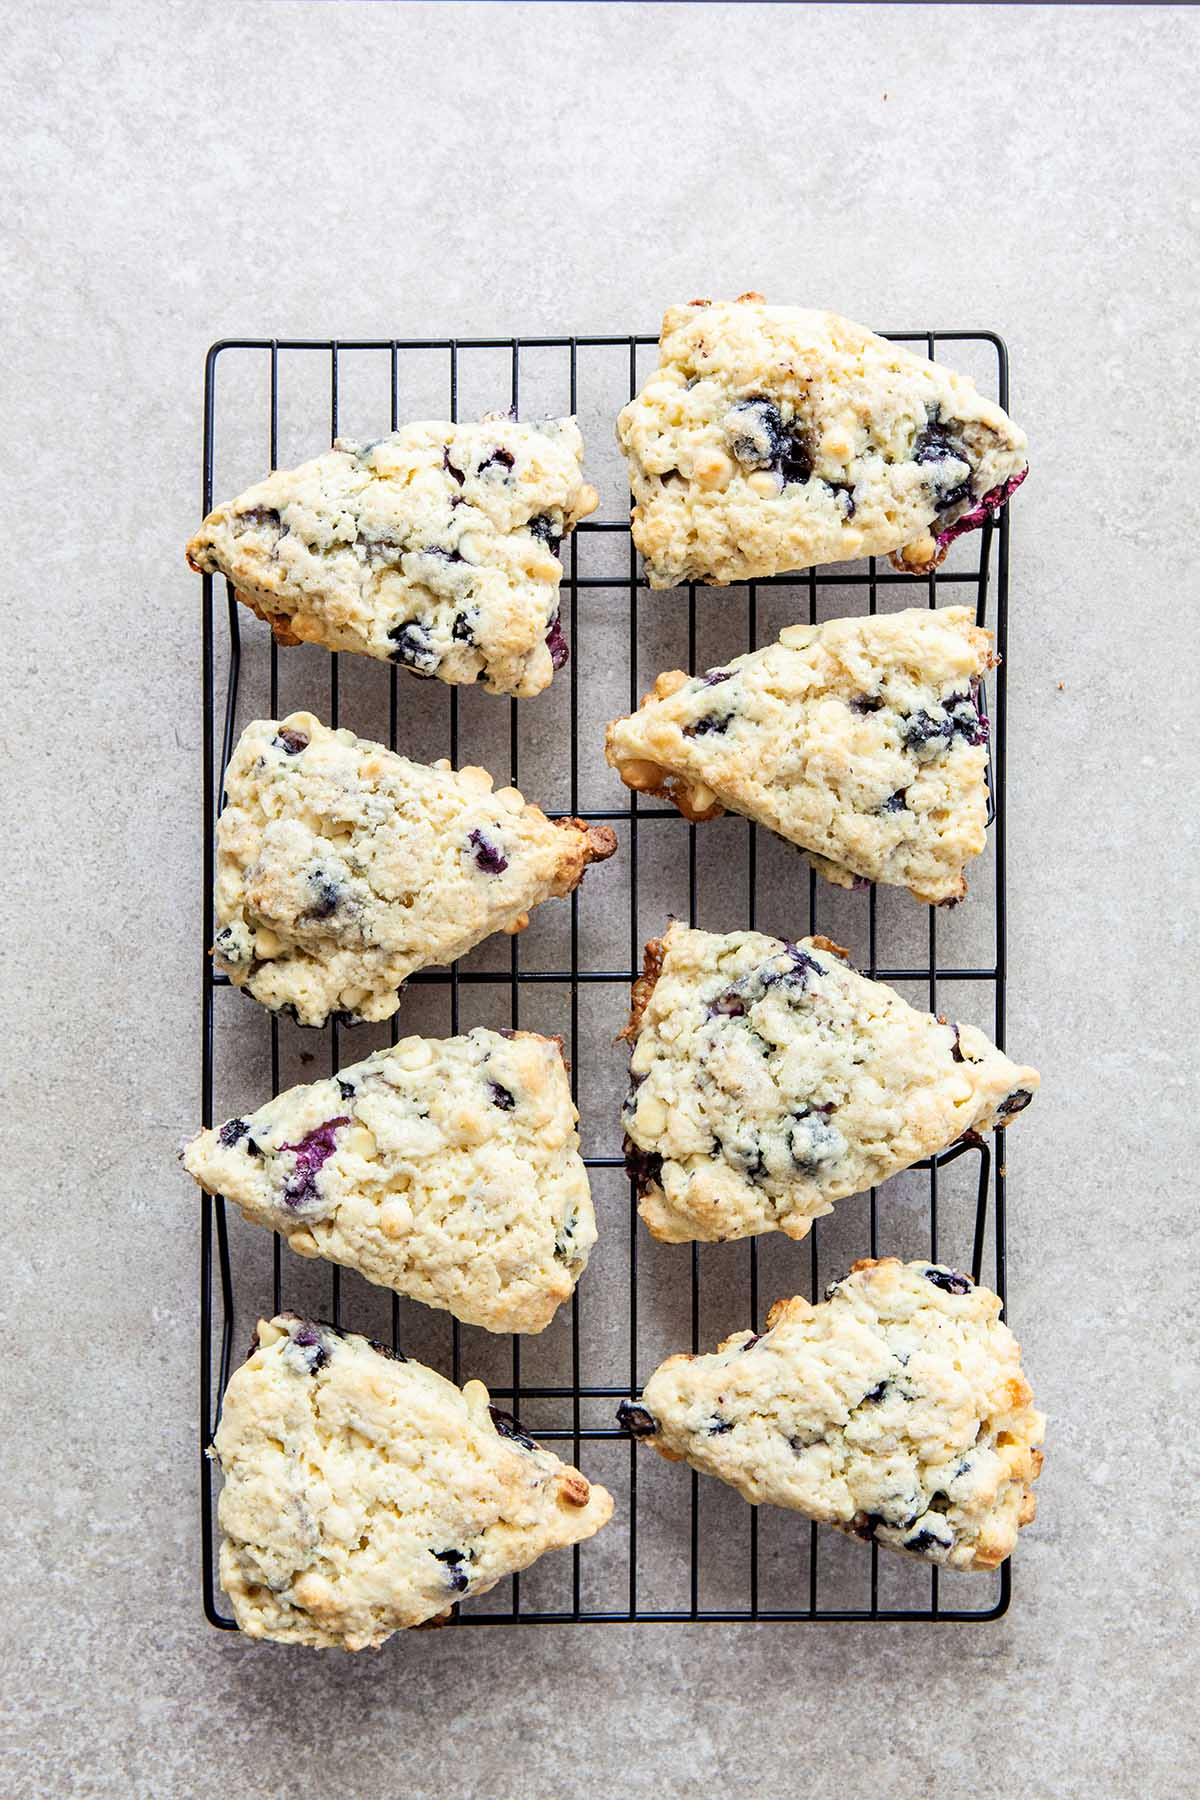 Eight blueberry white chocolate scones cooling on a rack set on a stone surface.